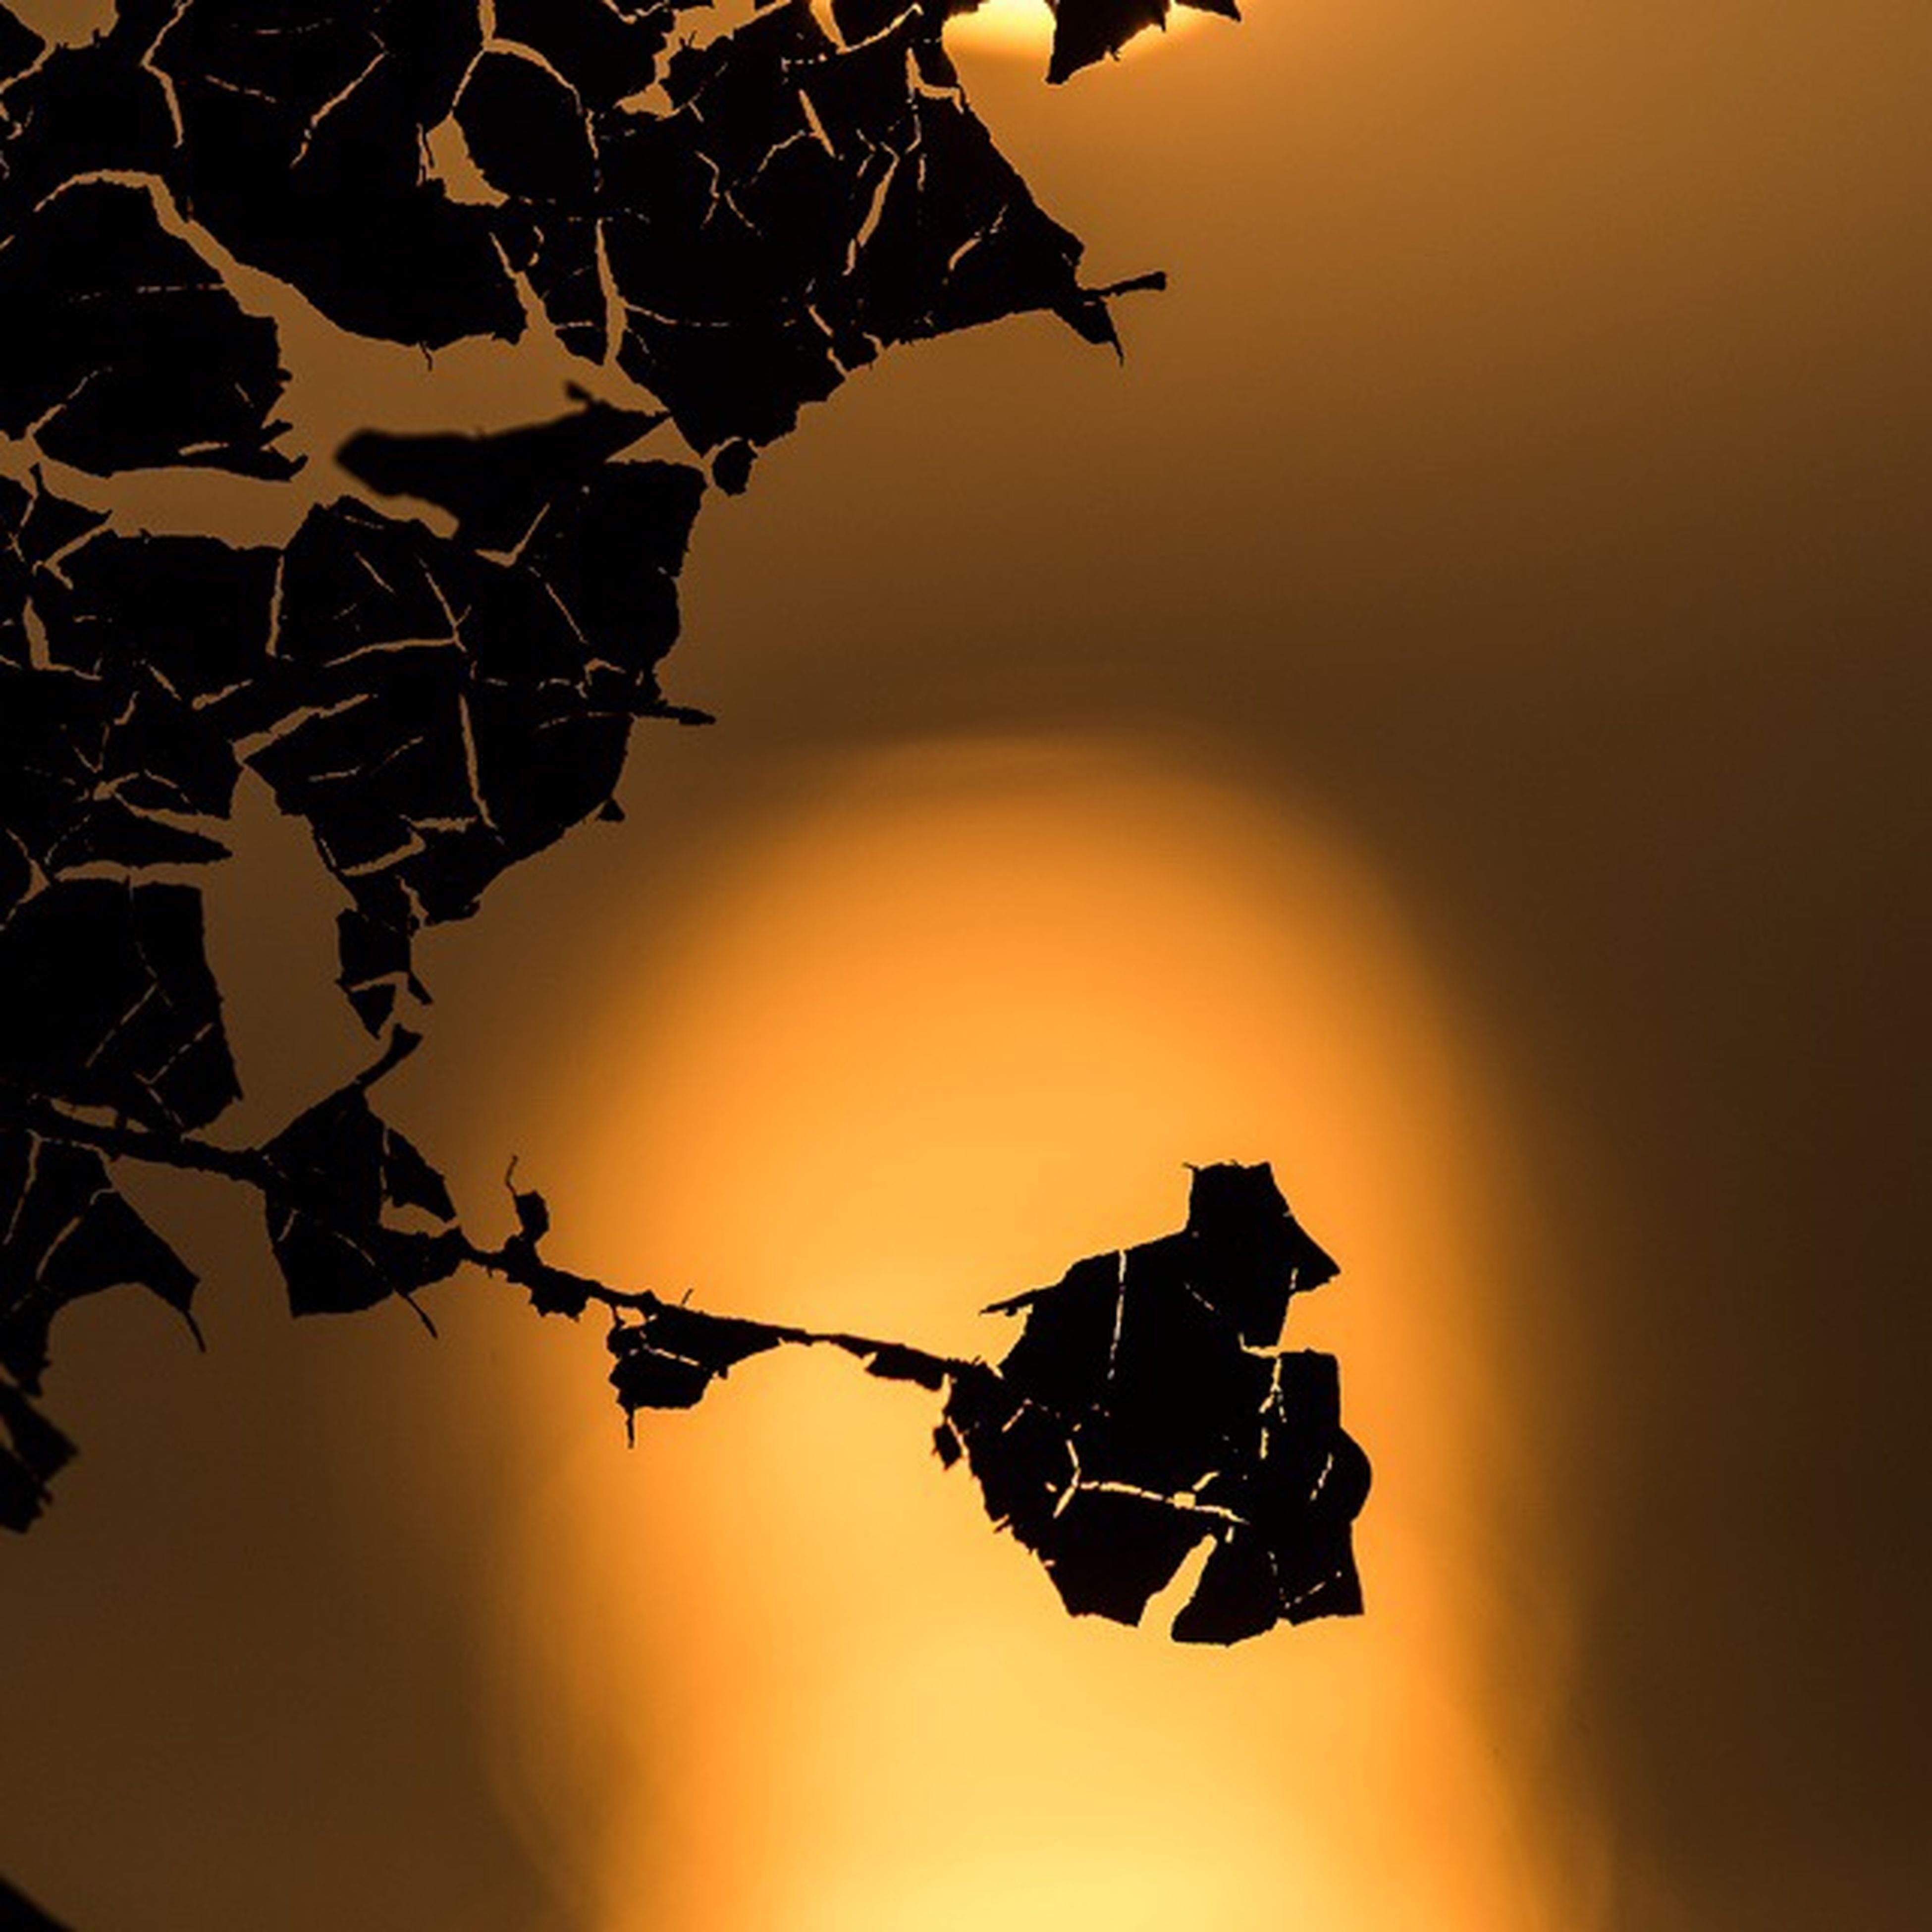 silhouette, sunset, beauty in nature, nature, outdoors, no people, close-up, astronomy, day